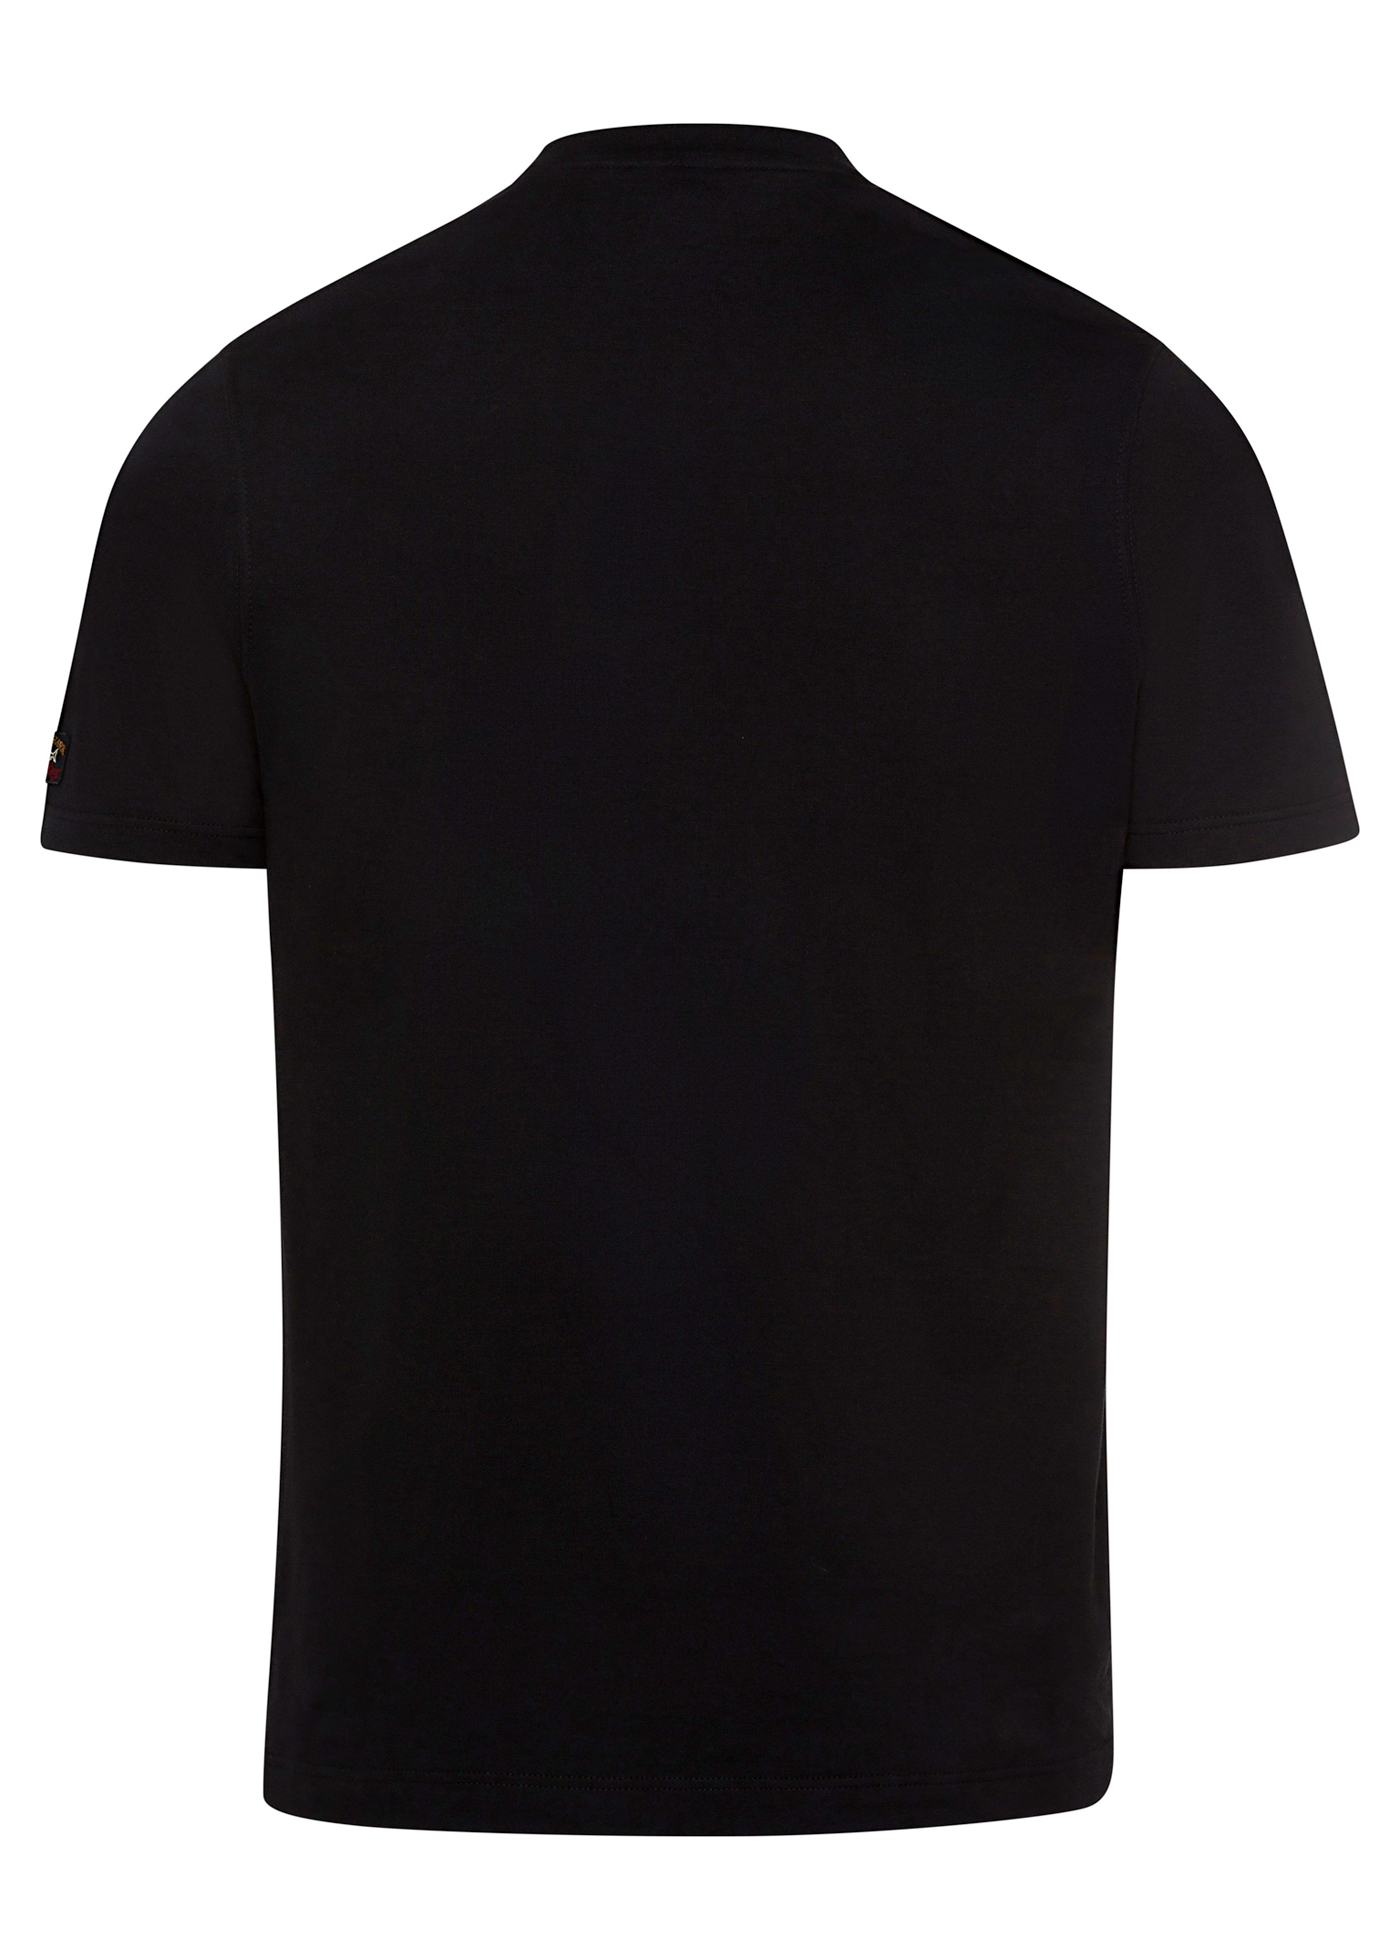 MEN'S KNITTED T-SHIRT C.W. COTTON image number 1